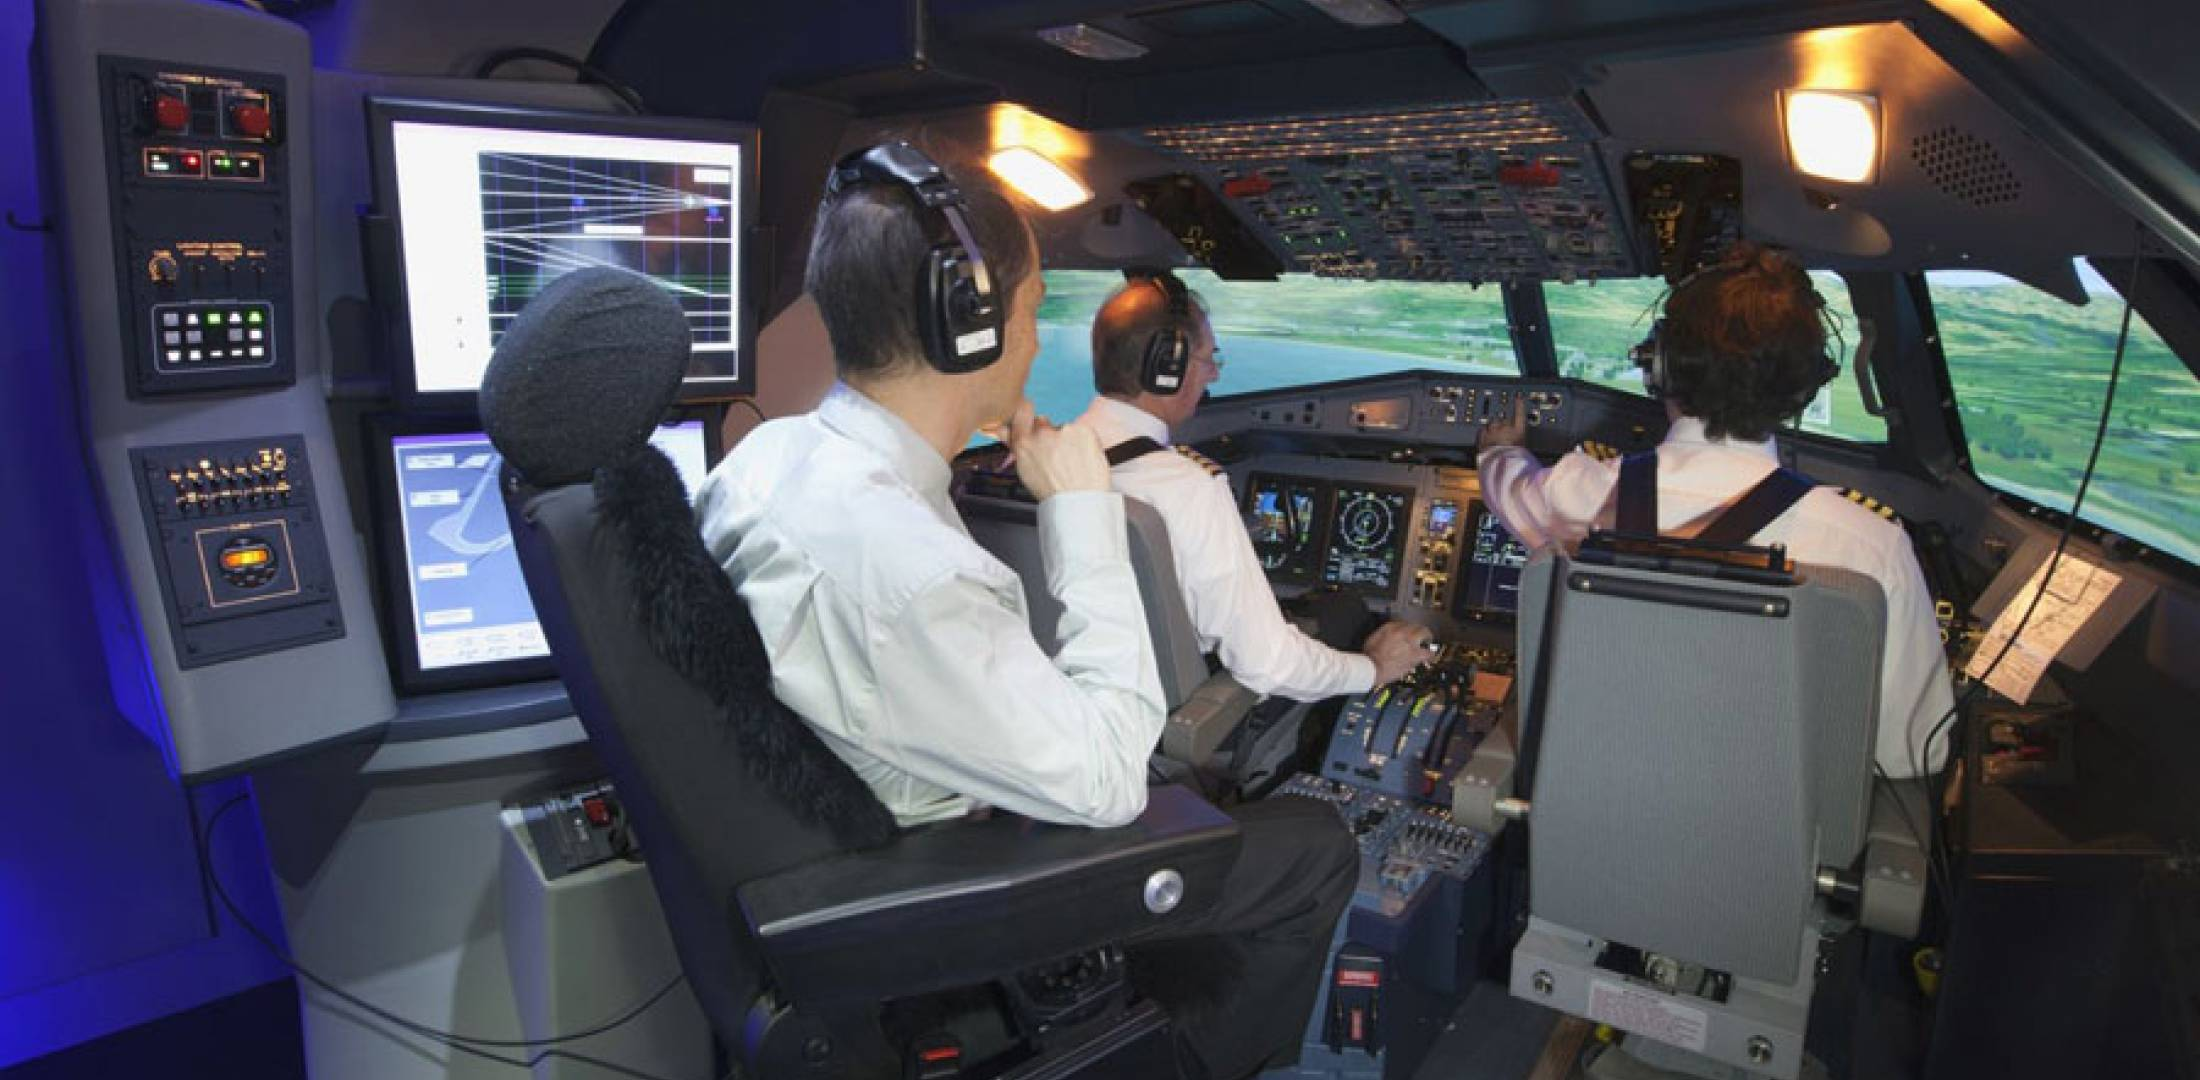 Asia's Budget Carriers Plan Training Centers | Air Transport